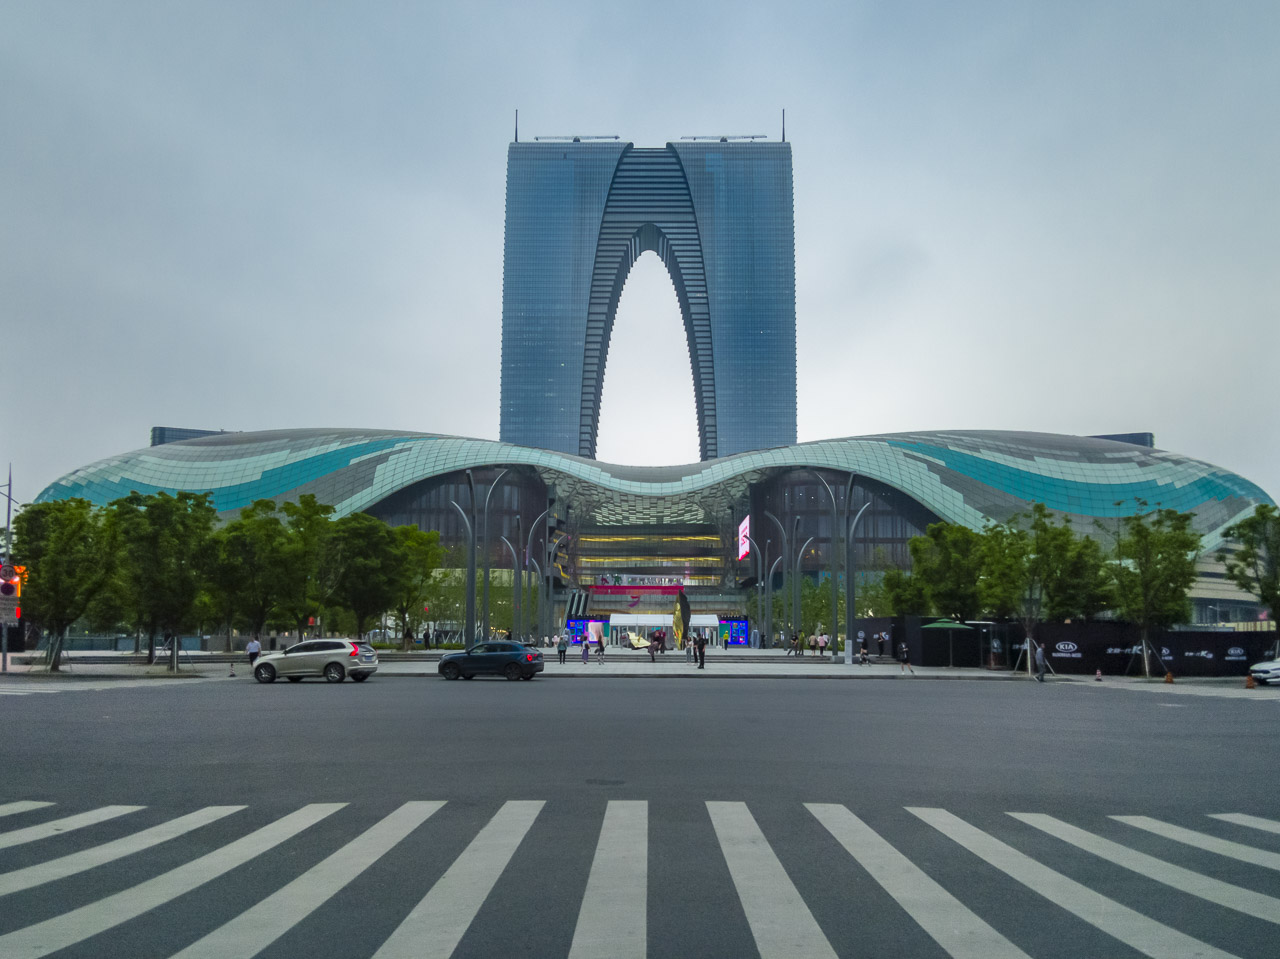 The Suzhou Center Mall